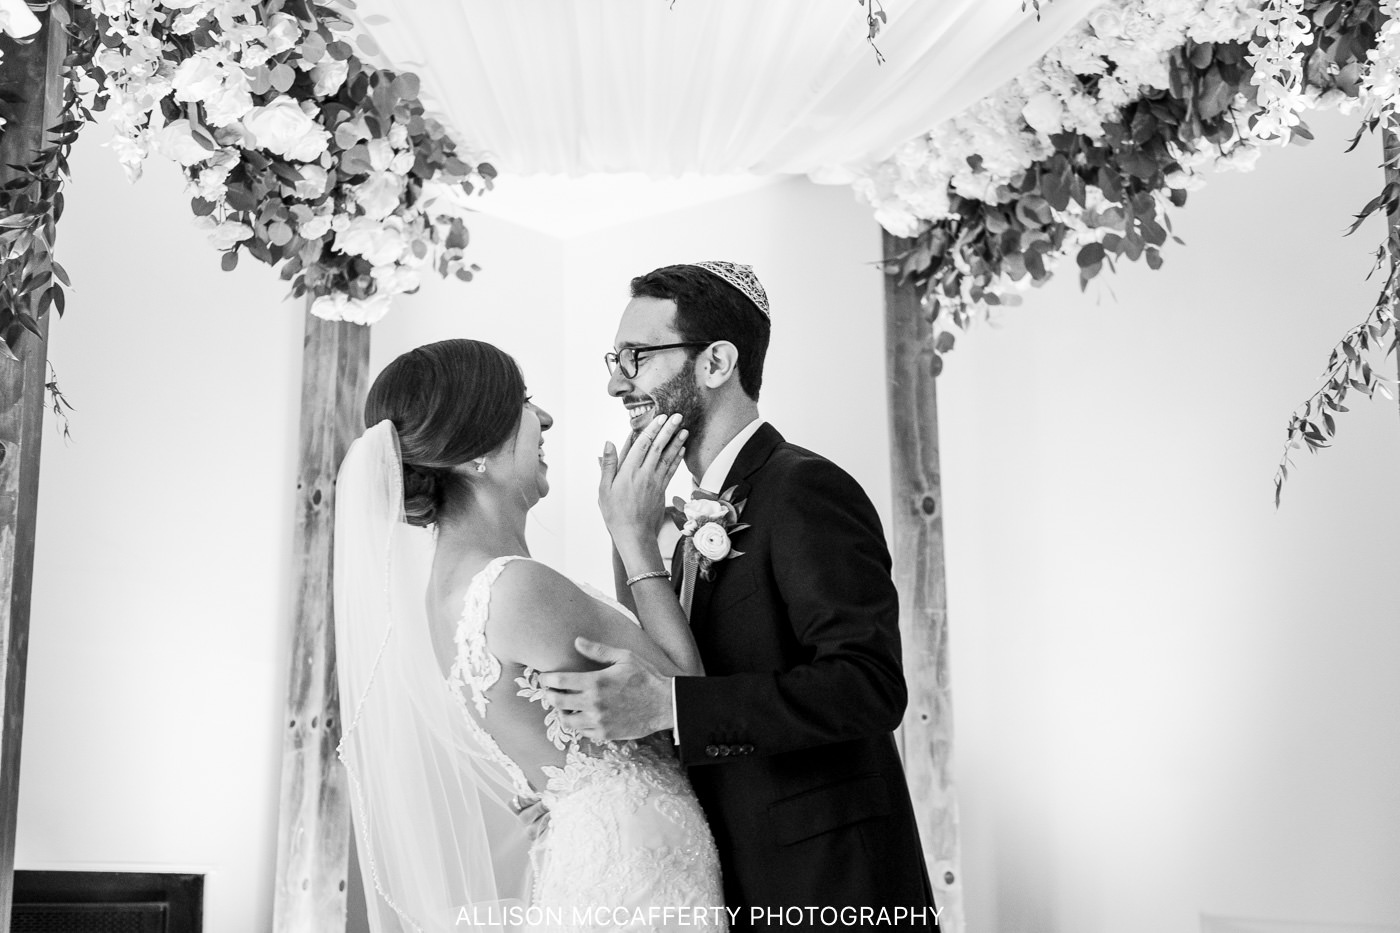 Couple under huppah black and white photo